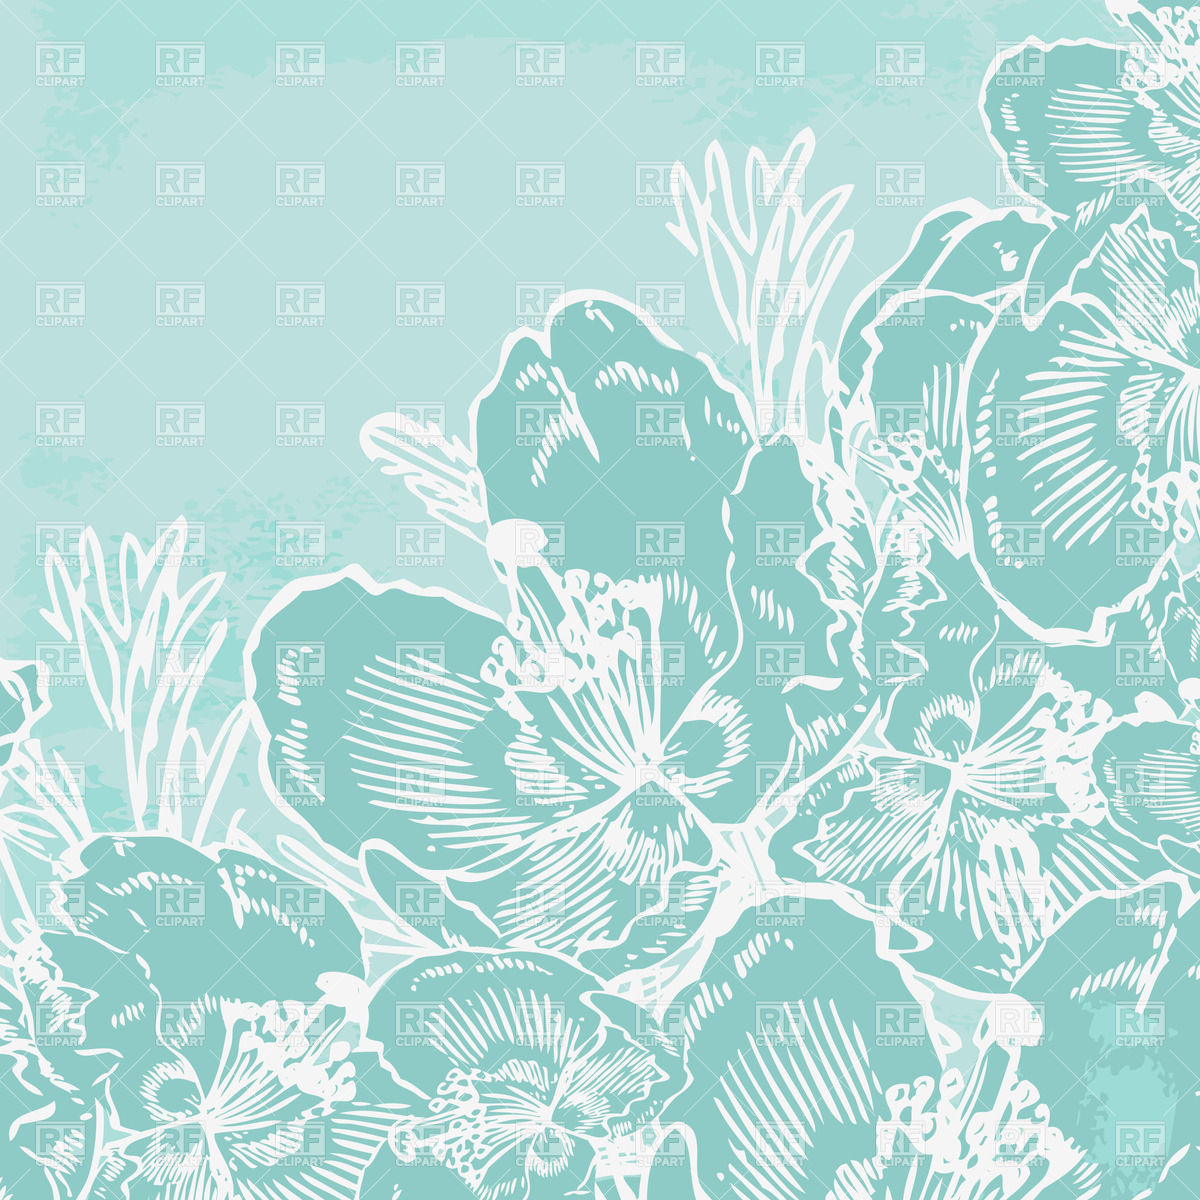 Free Download Blue Vintage Floral Background Abstract Vintage Blue